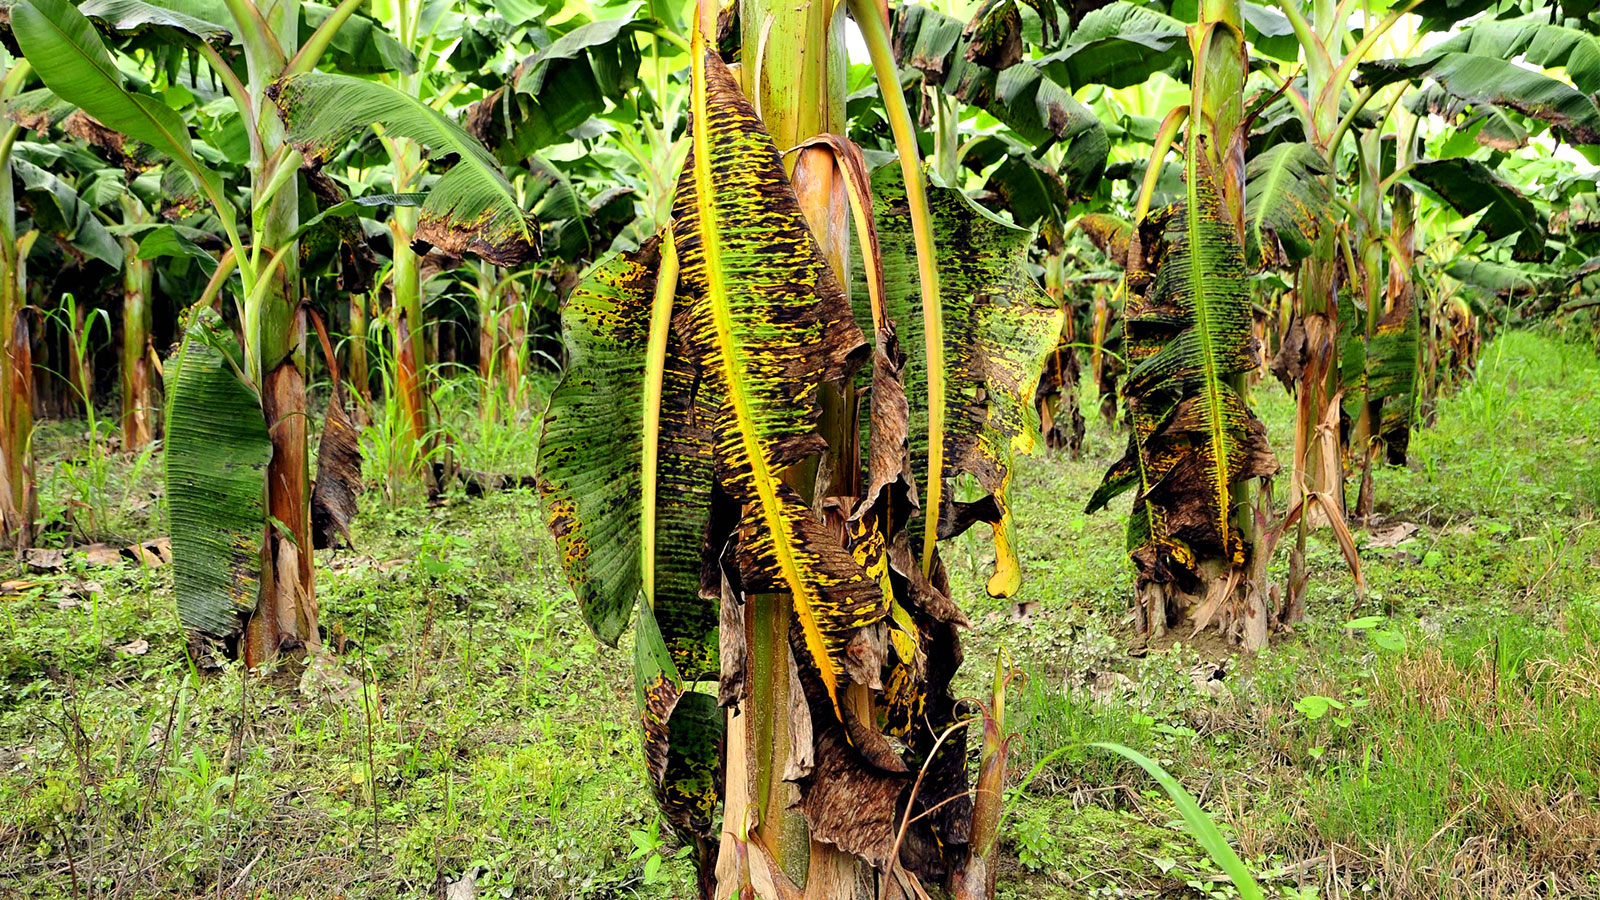 Palm tree affected by Black Sigatoka disease